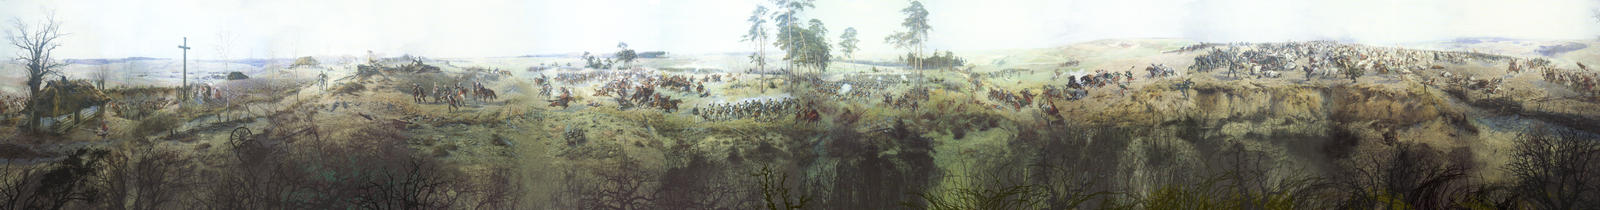 BATTLE OF RACLAWICE 1794 by KOKORONIN